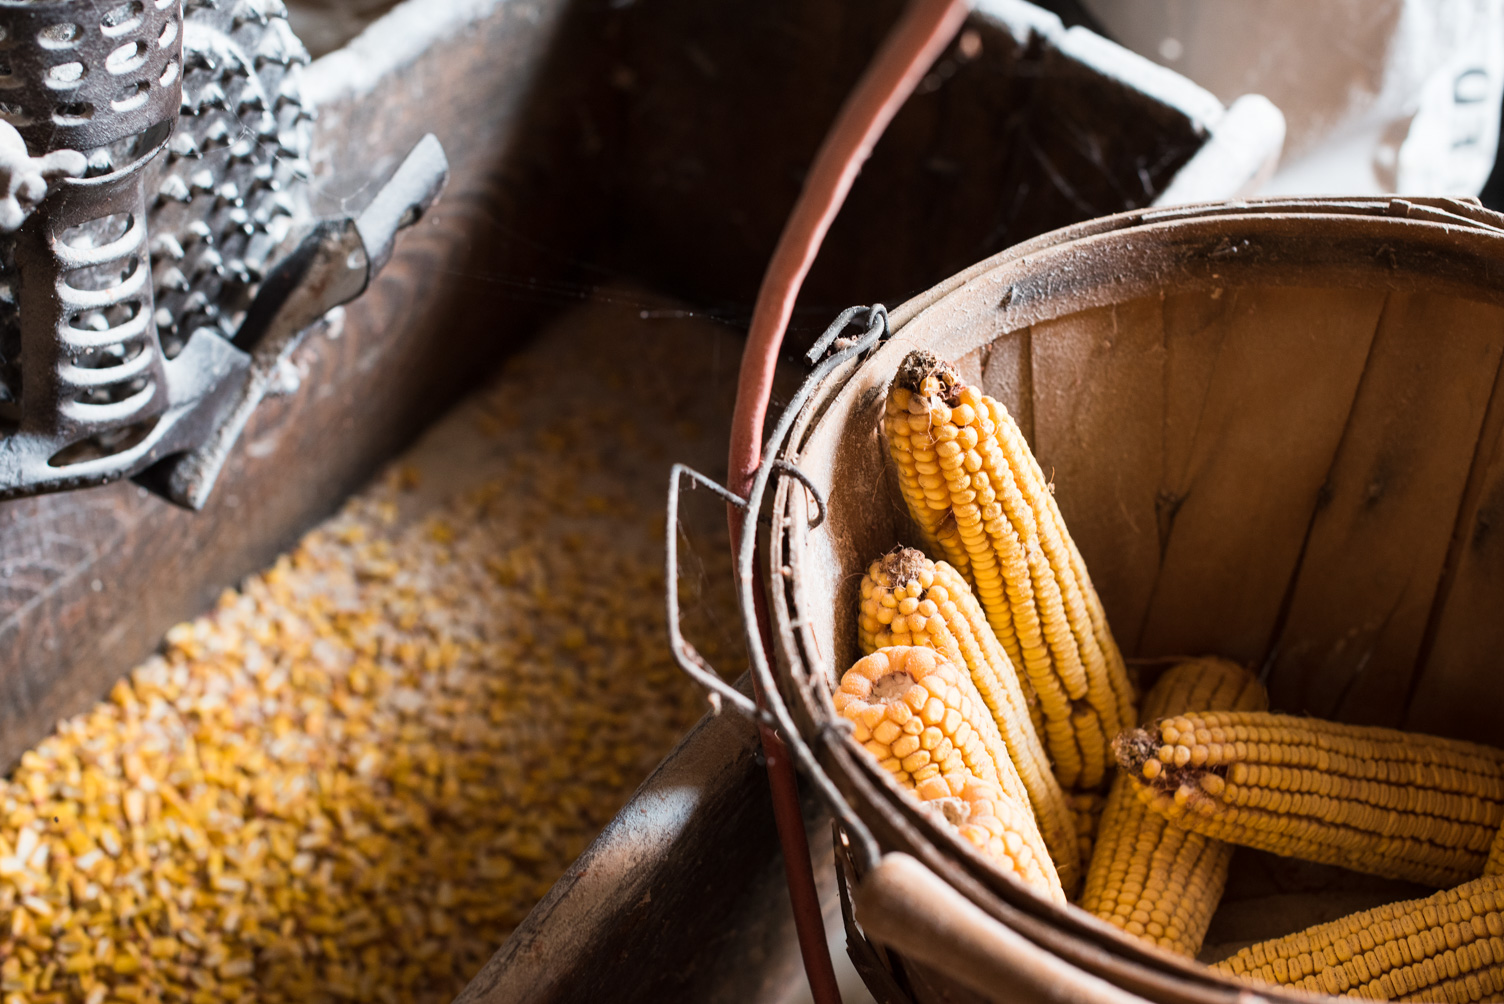 Ed Krugmire, owner of Schech's Mill, grows his own corn for cornmeal // Photo by Kevin Kramer, The Growler